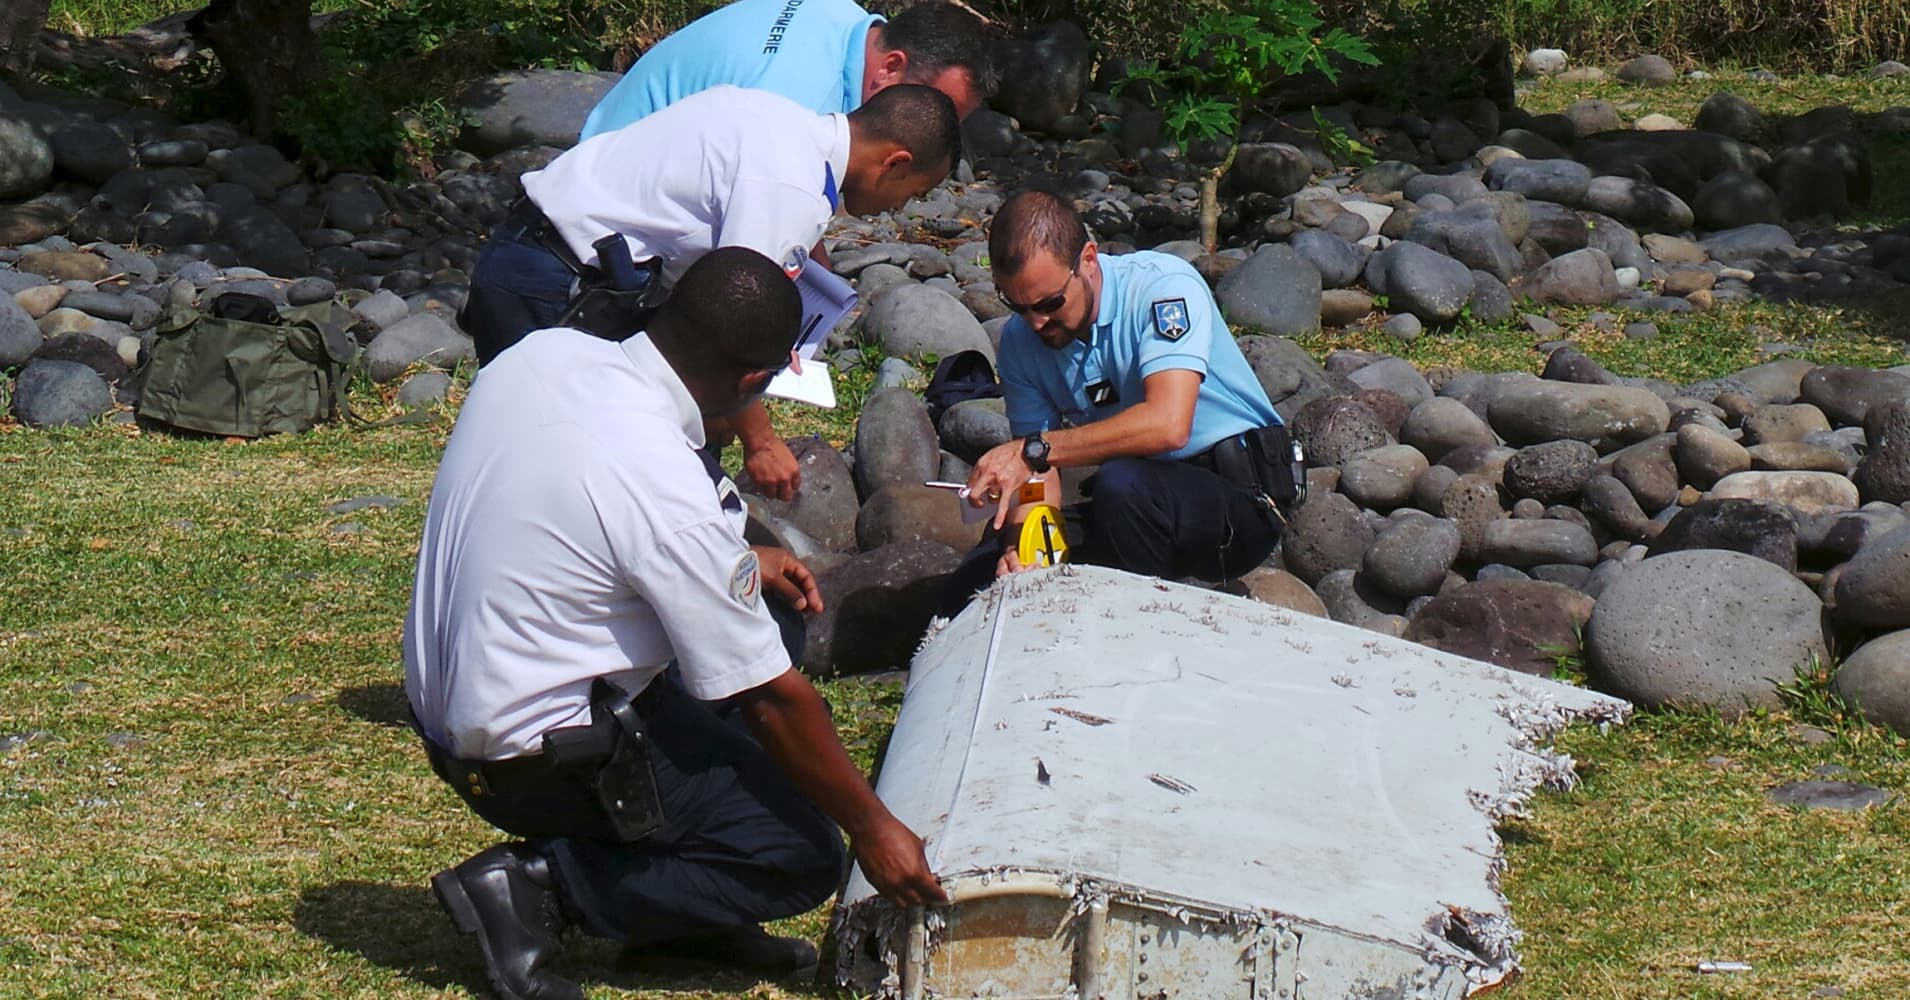 MH370 mystery: Search resumes for the plane that went missing nearly four years ago